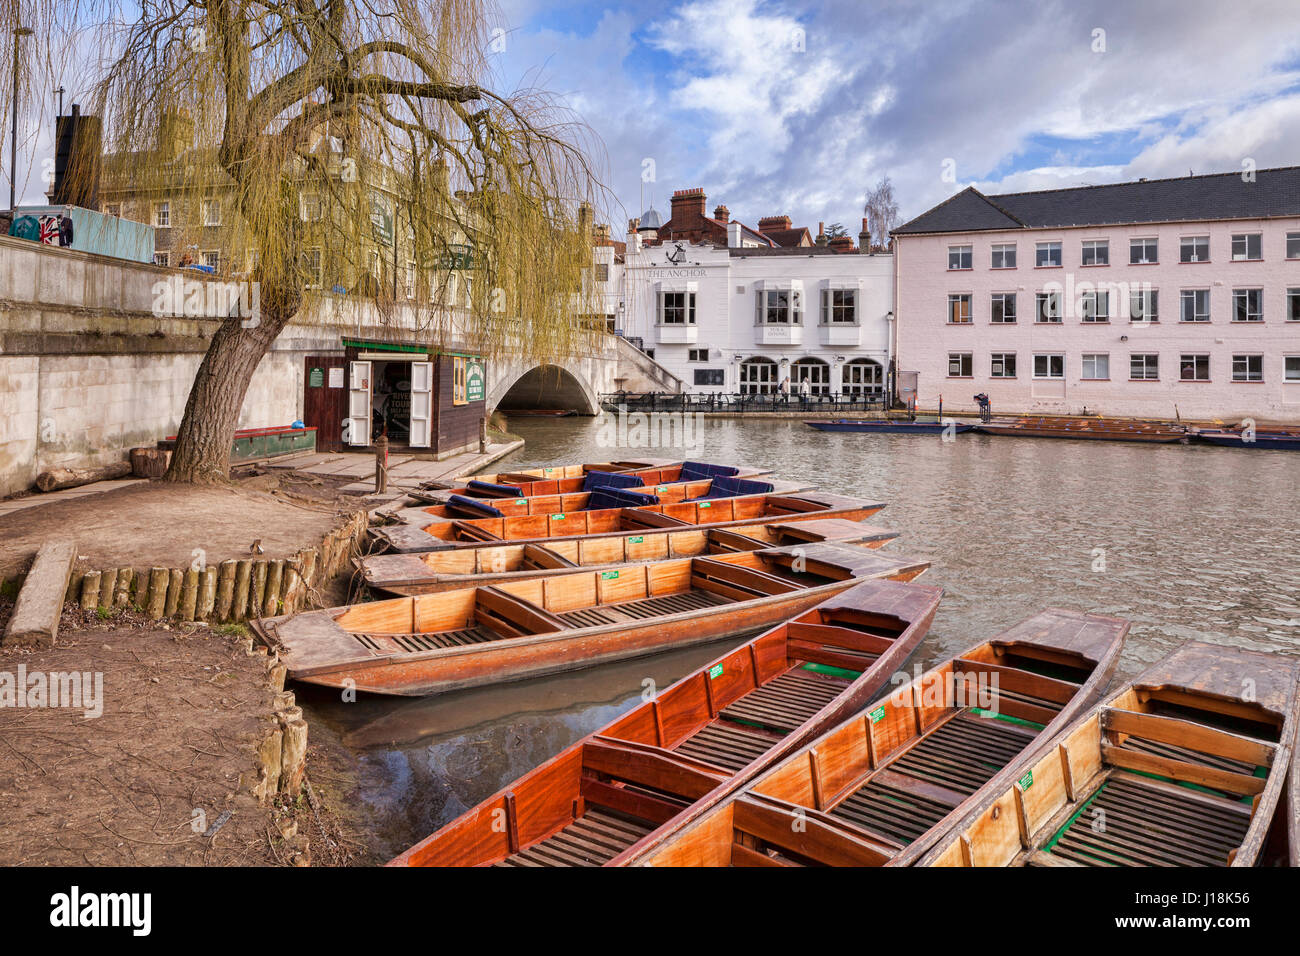 Punts beside the River Cam, Cambridge, England. Opposite is The Anchor public house. - Stock Image